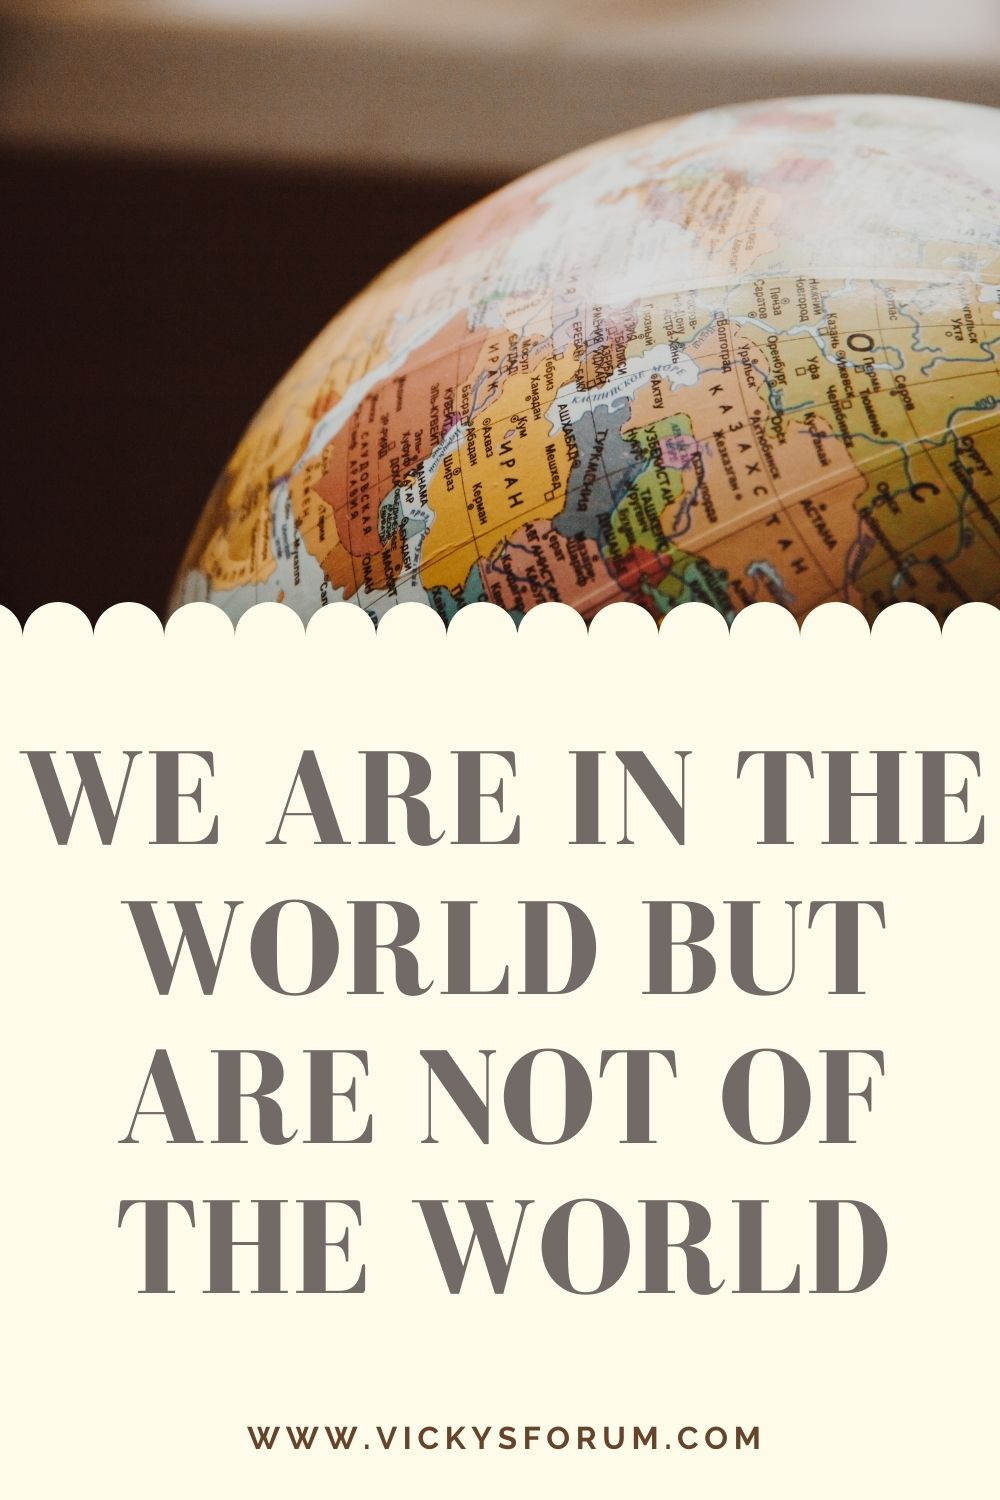 We are not of the world